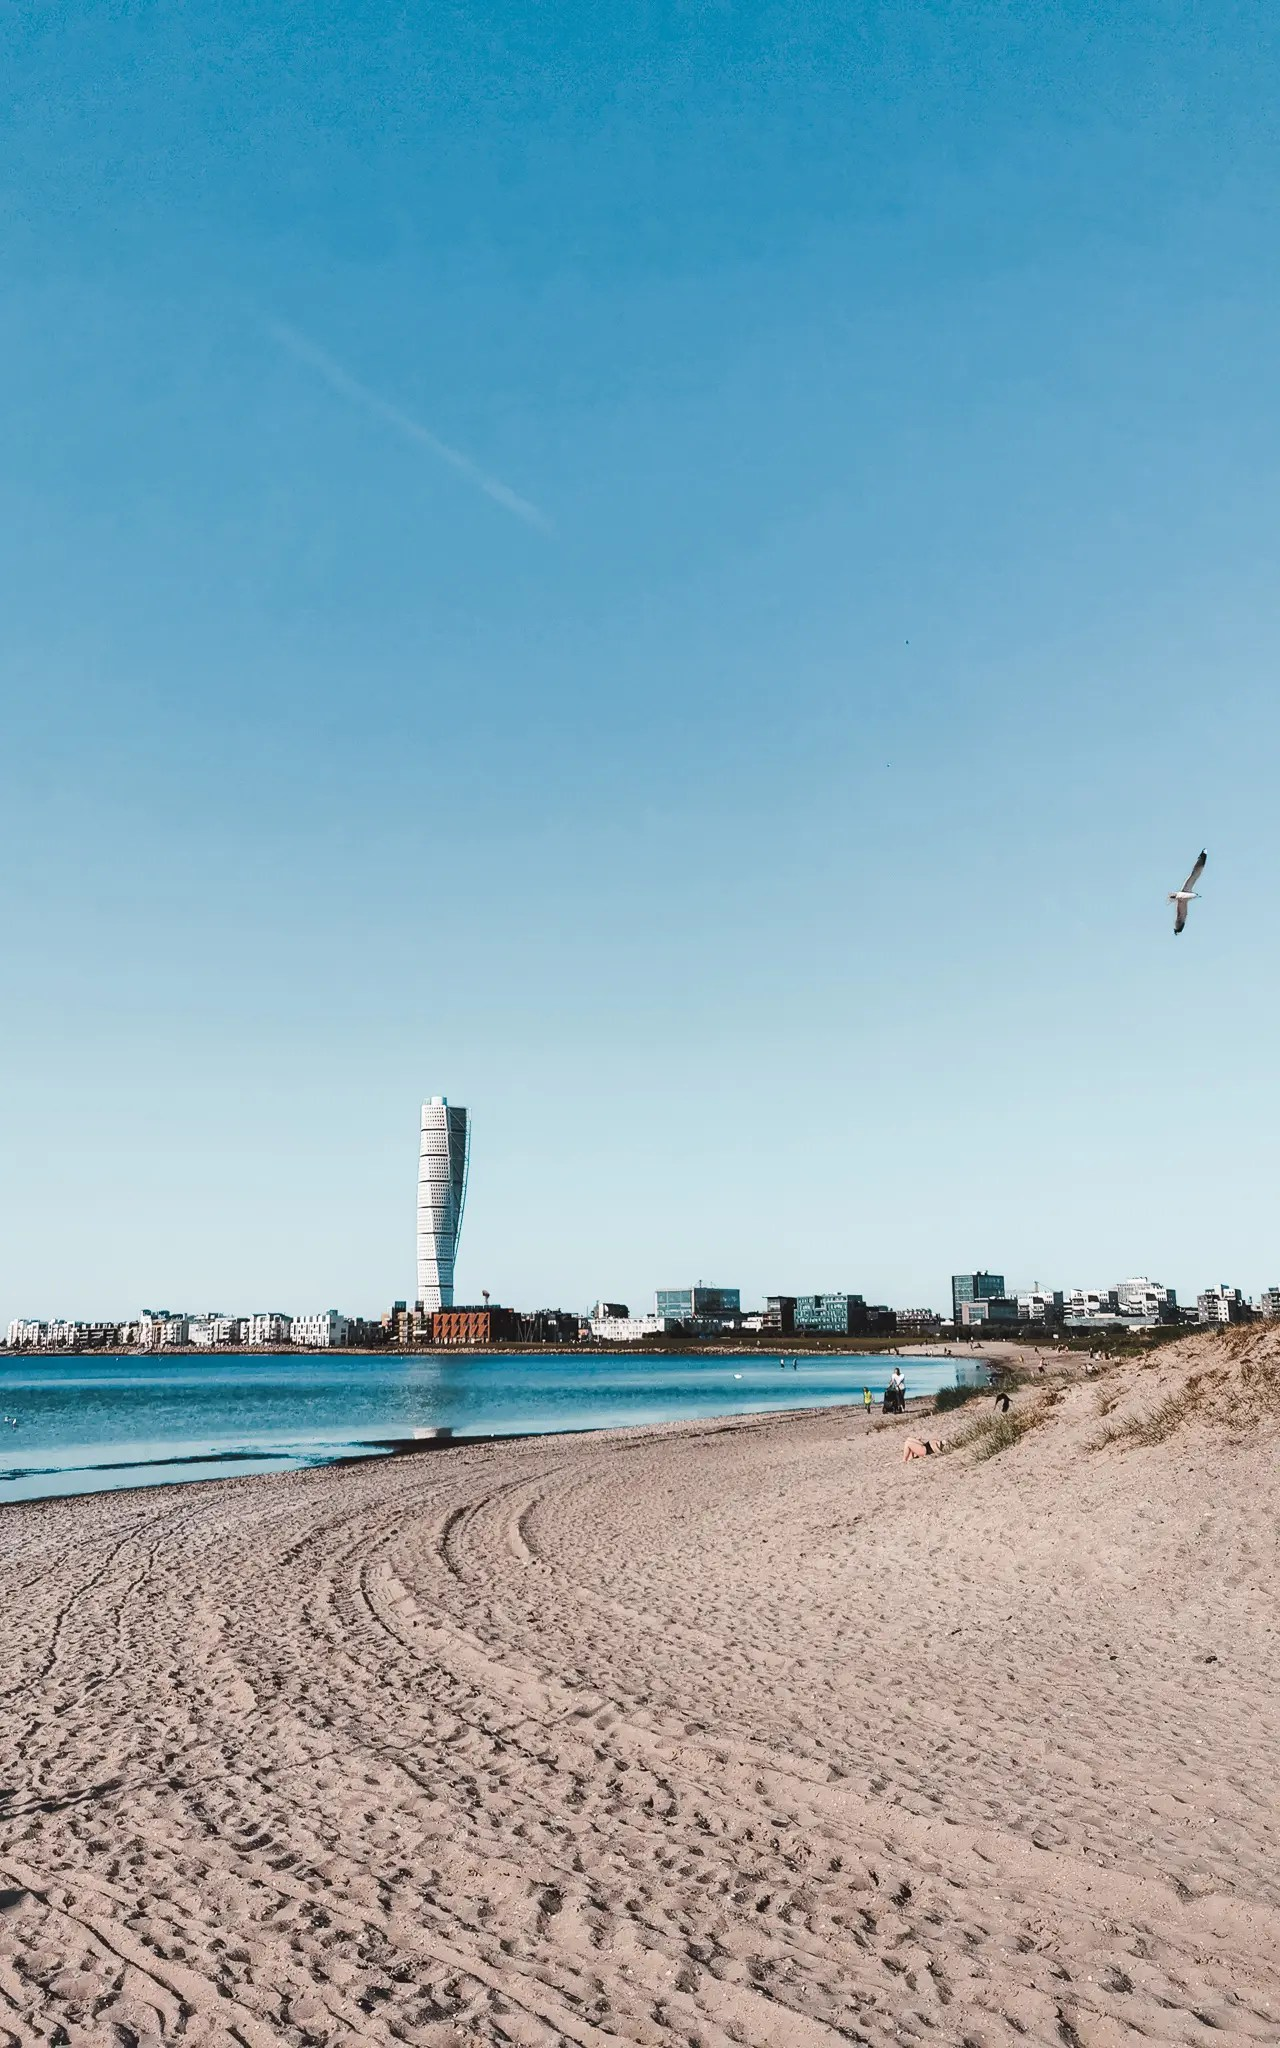 Malmö's Ribersborg beach with the view of the Turning Torso, the tallest building in Scandinavia.